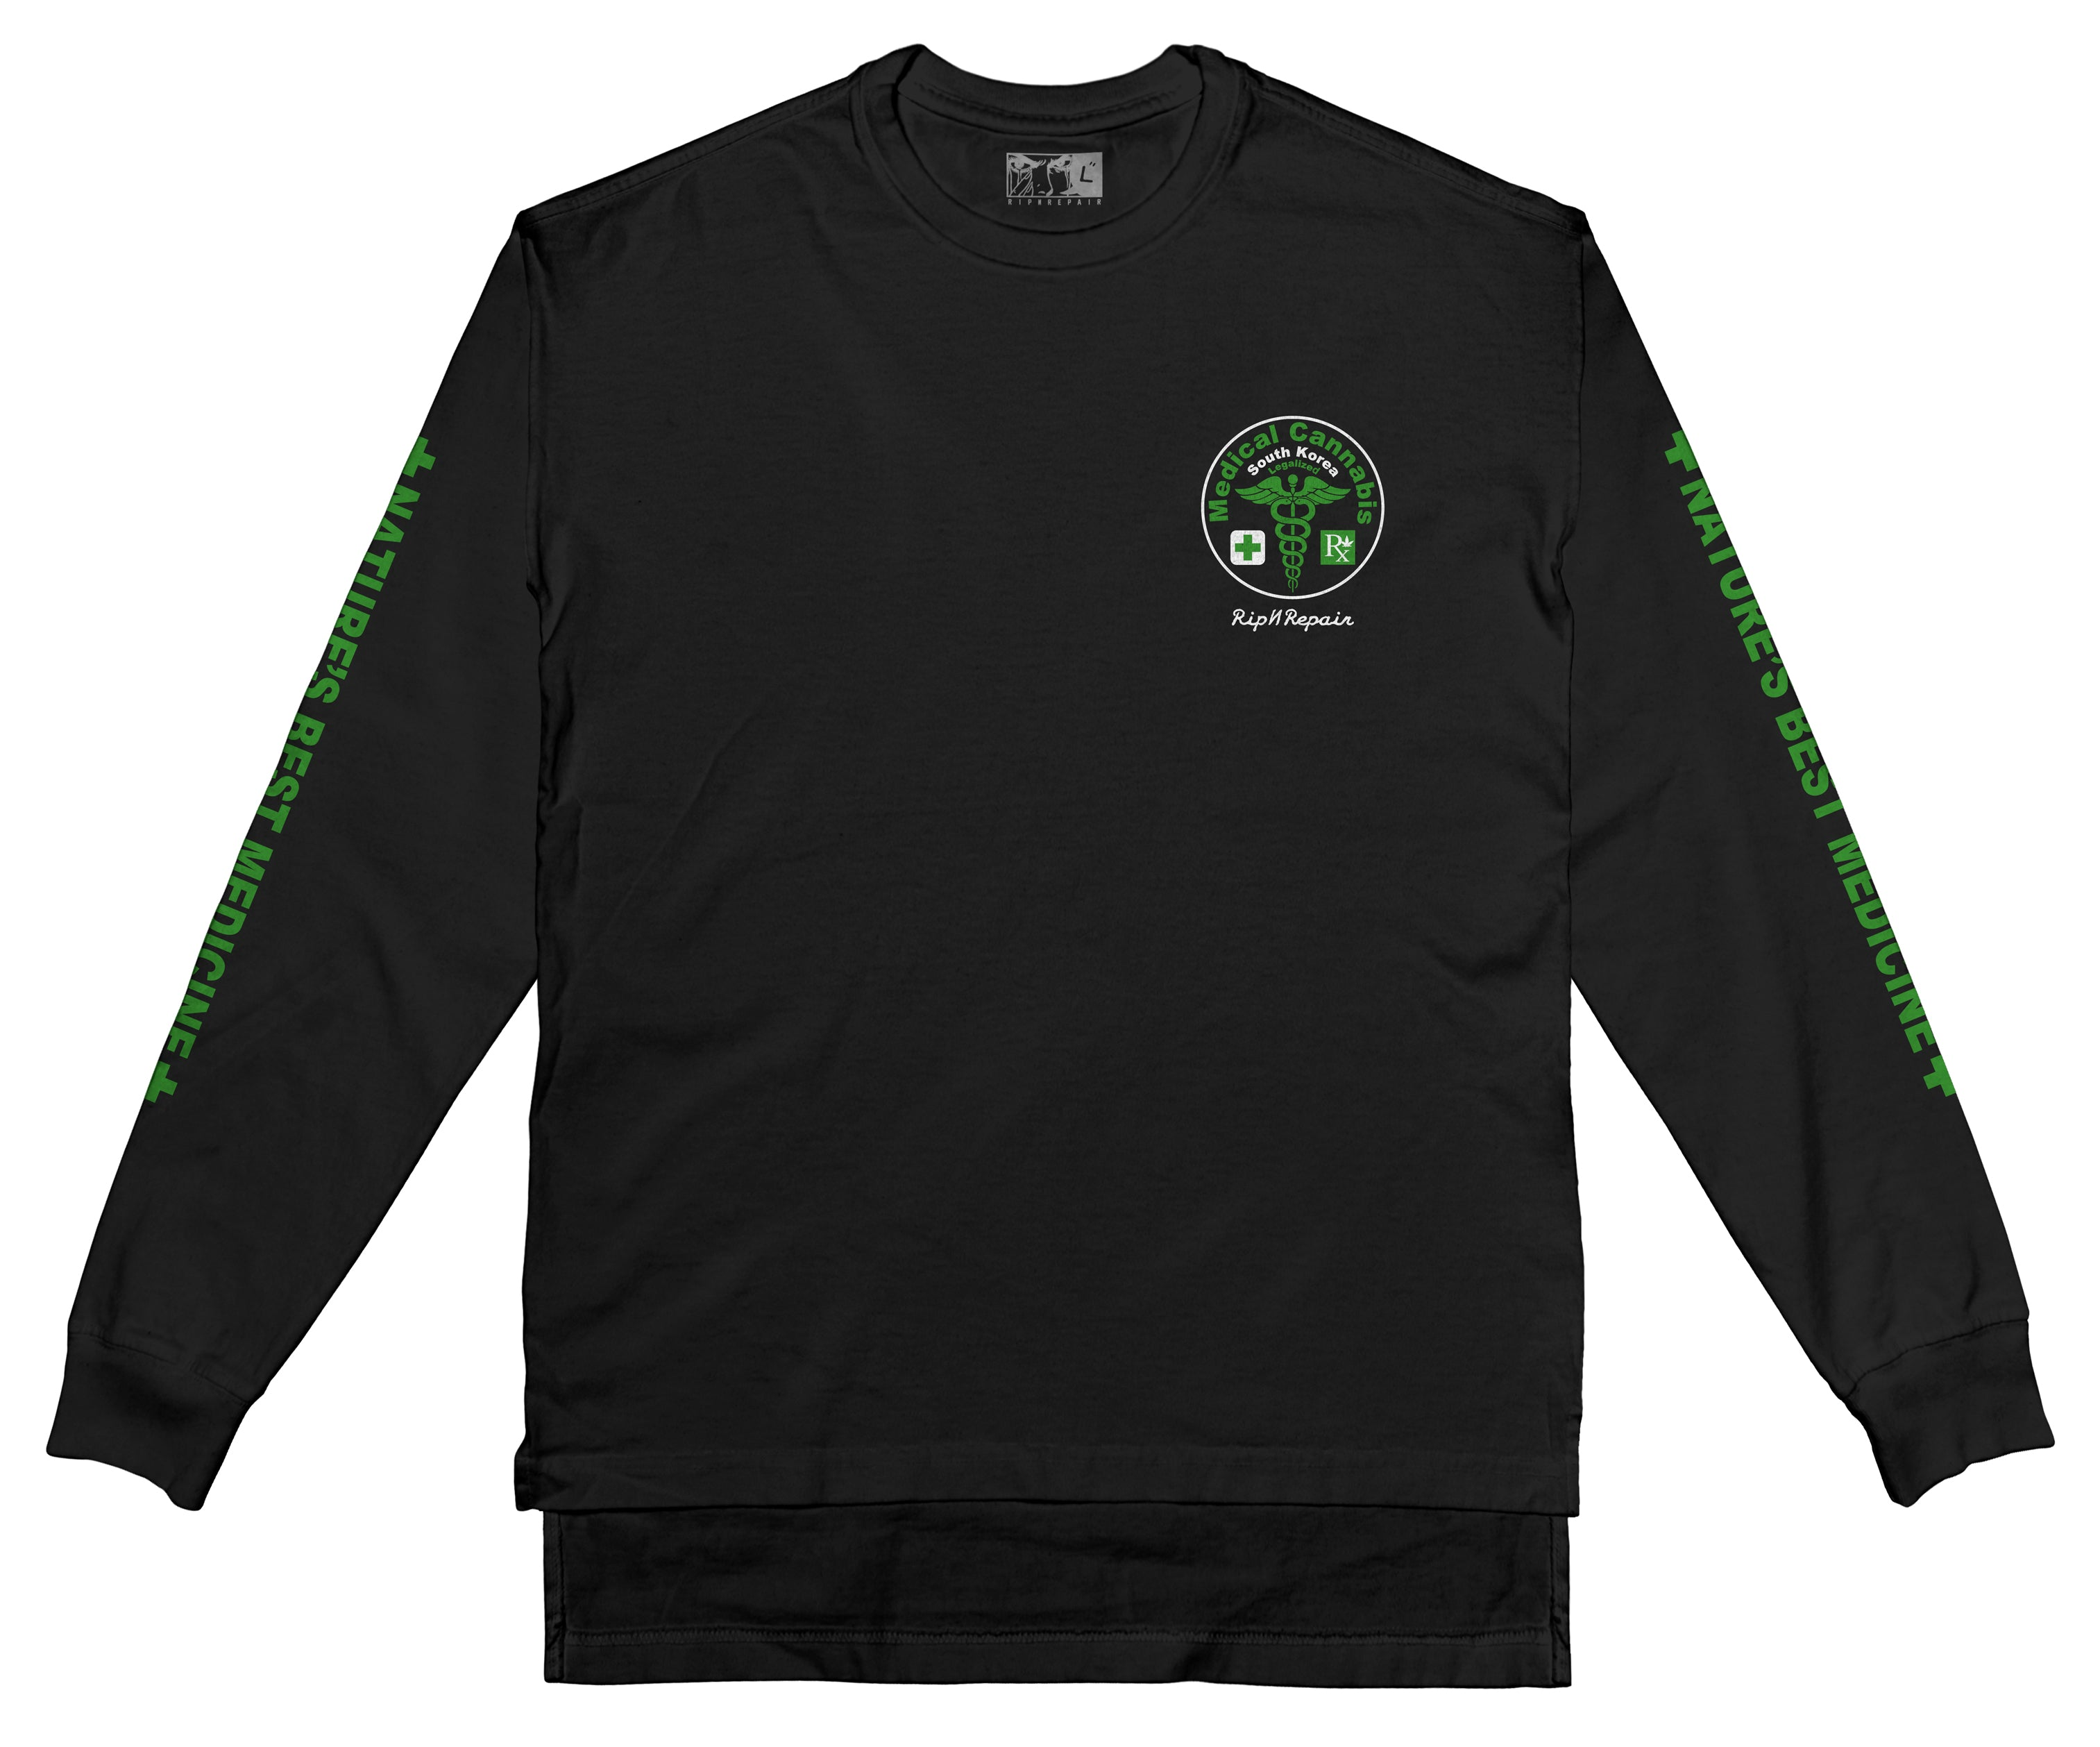 Natures Best - Long sleeve (Black) - RIPNRPR